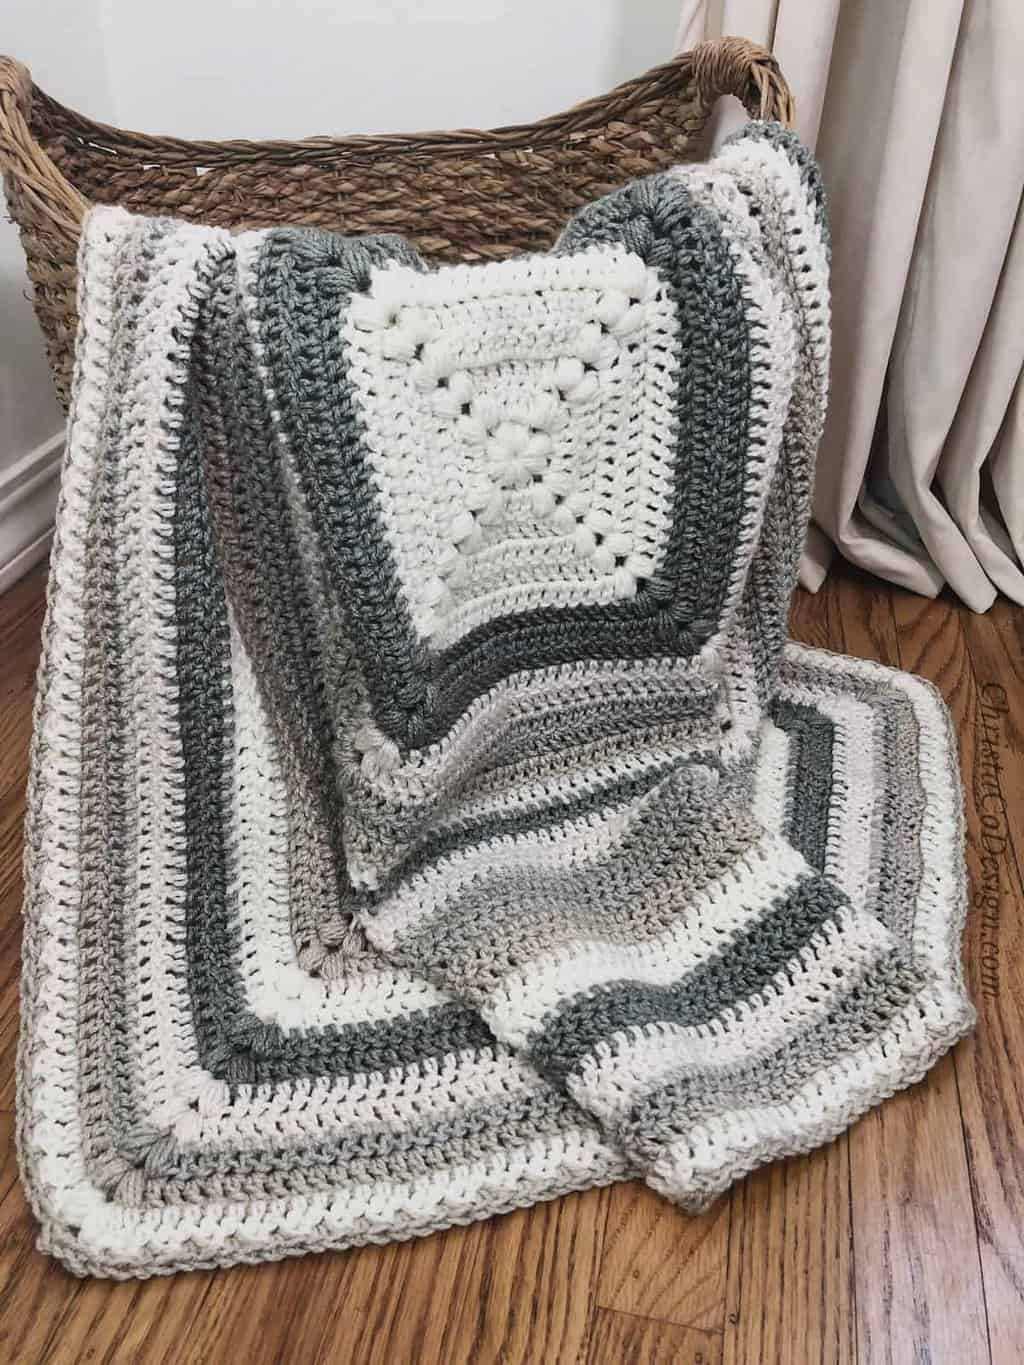 picture of grey and white crochet puff stitch blanket in basket